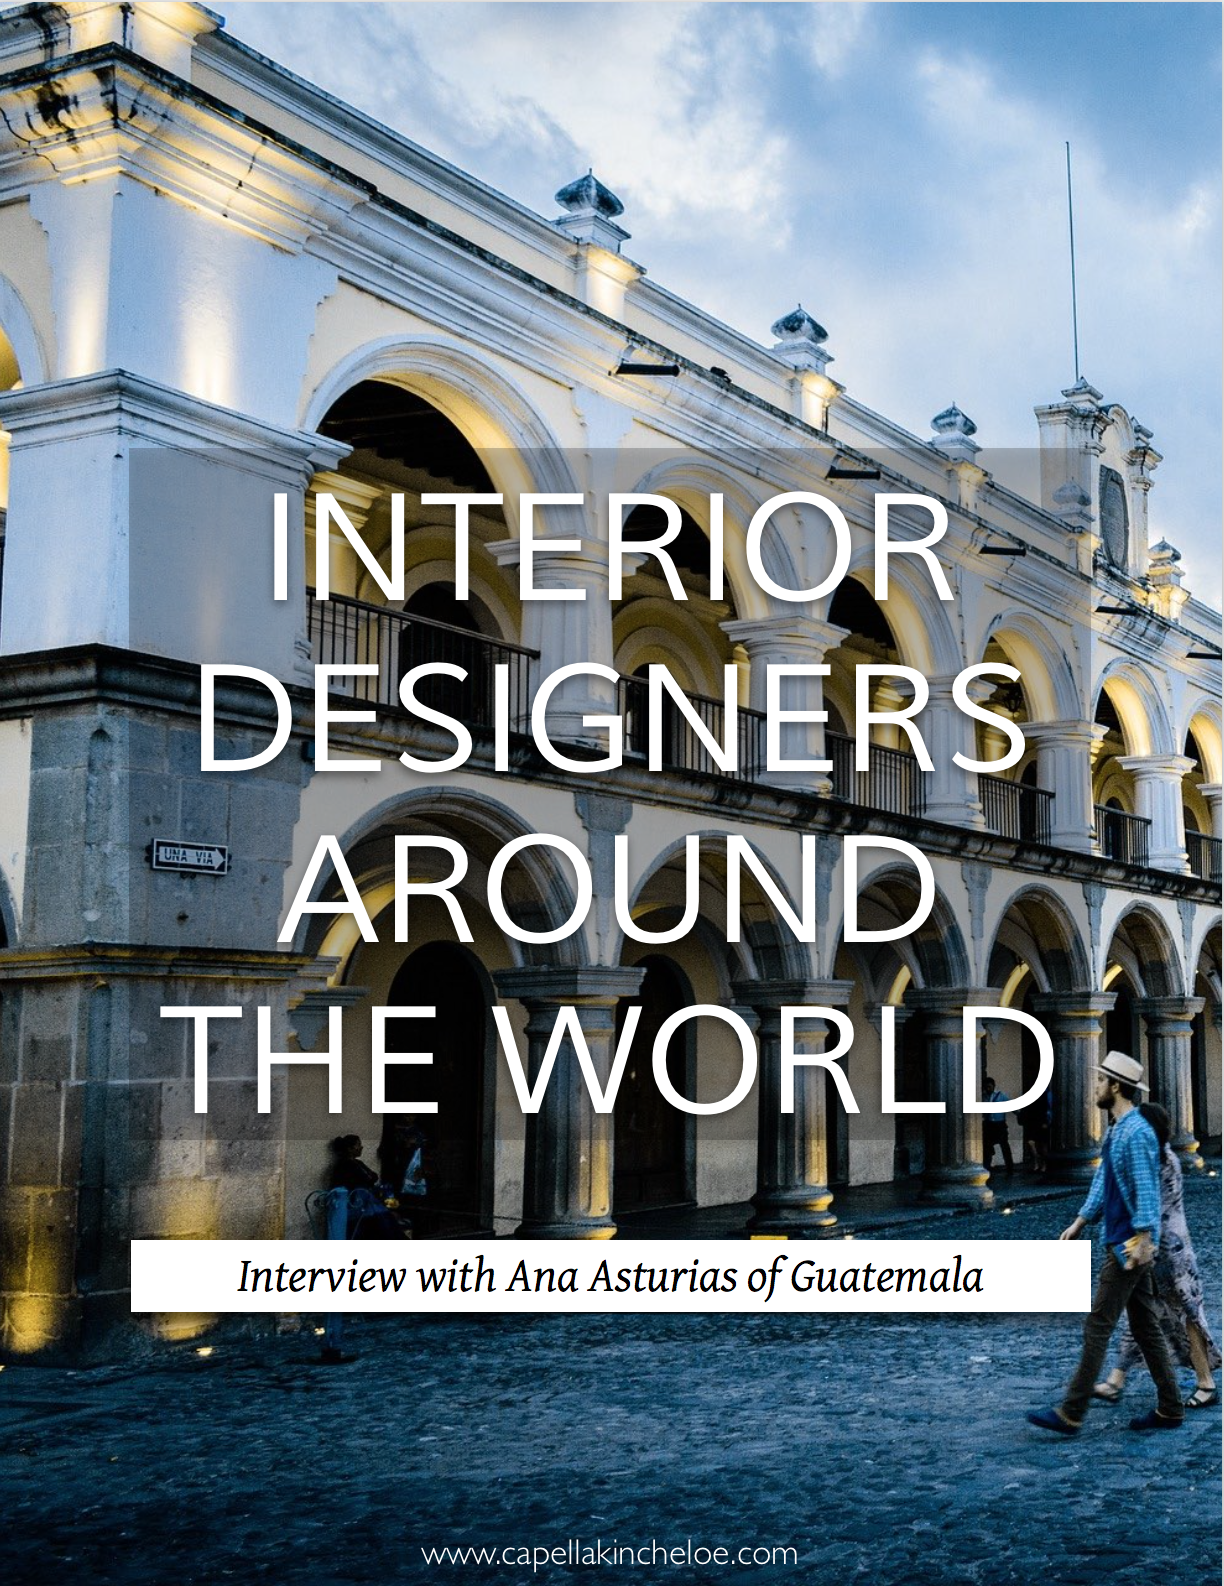 Get a peek inside interior design studios across the world.  #interiordesignbusiness #cktradesecrets #designersaroundtheworld